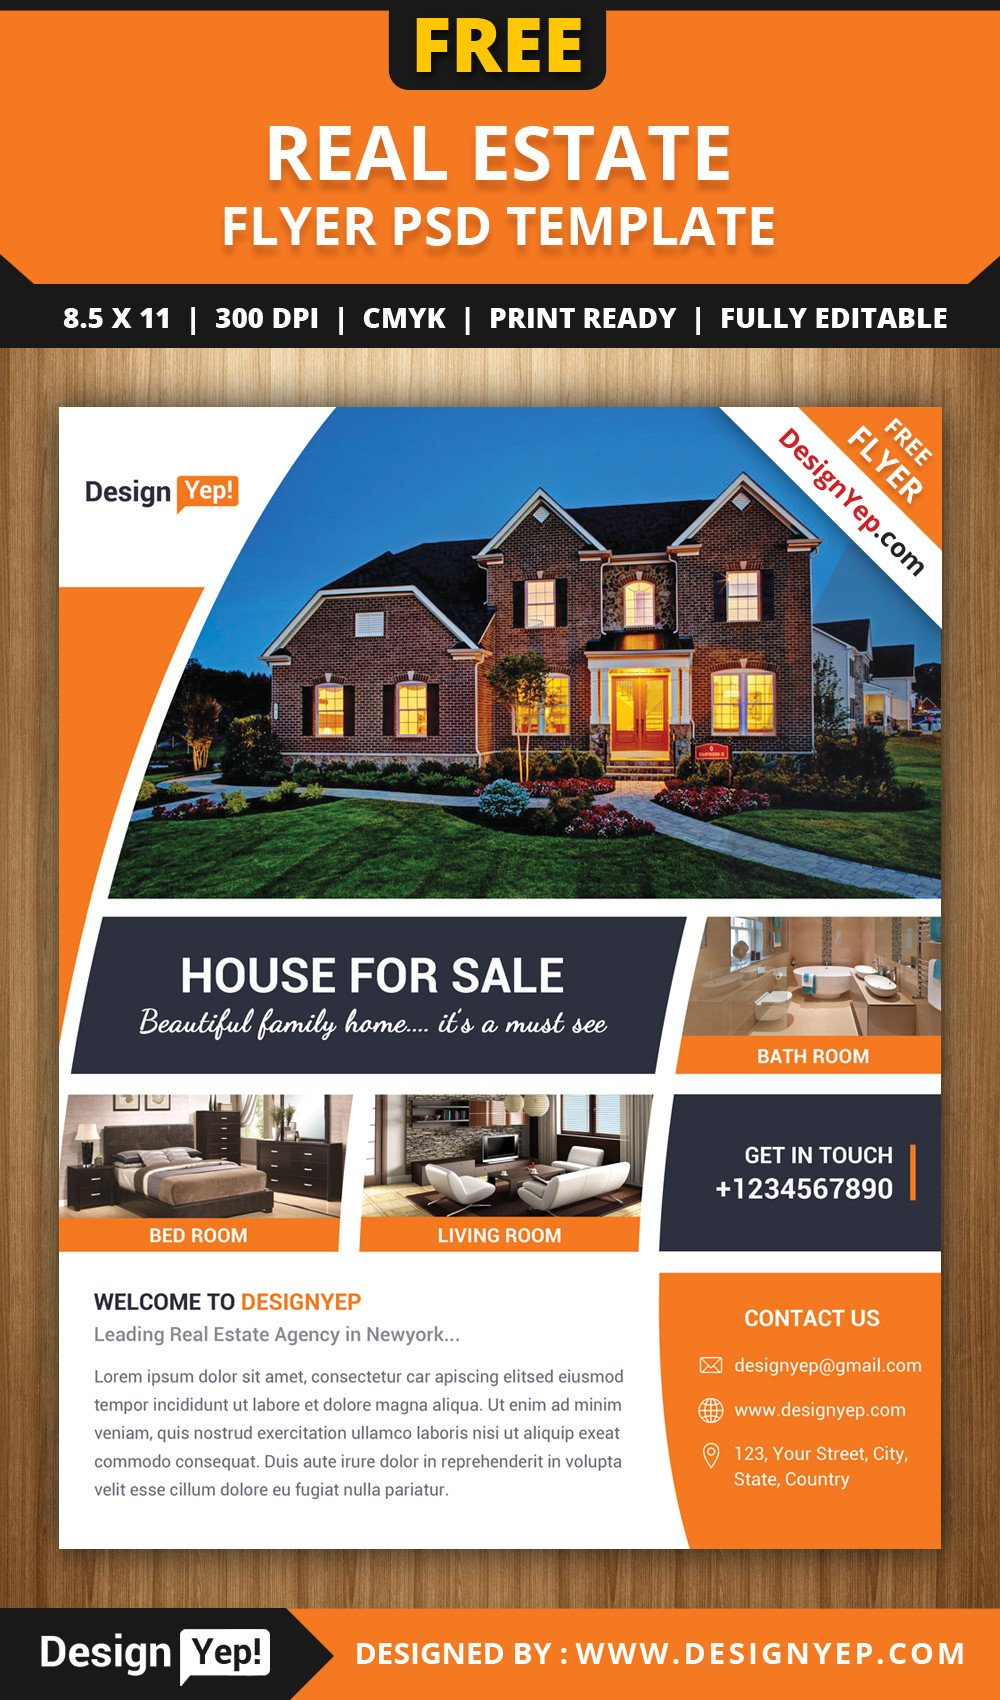 Real Estate Flyer Templates Free Real Estate Flyer Psd Template Designyep